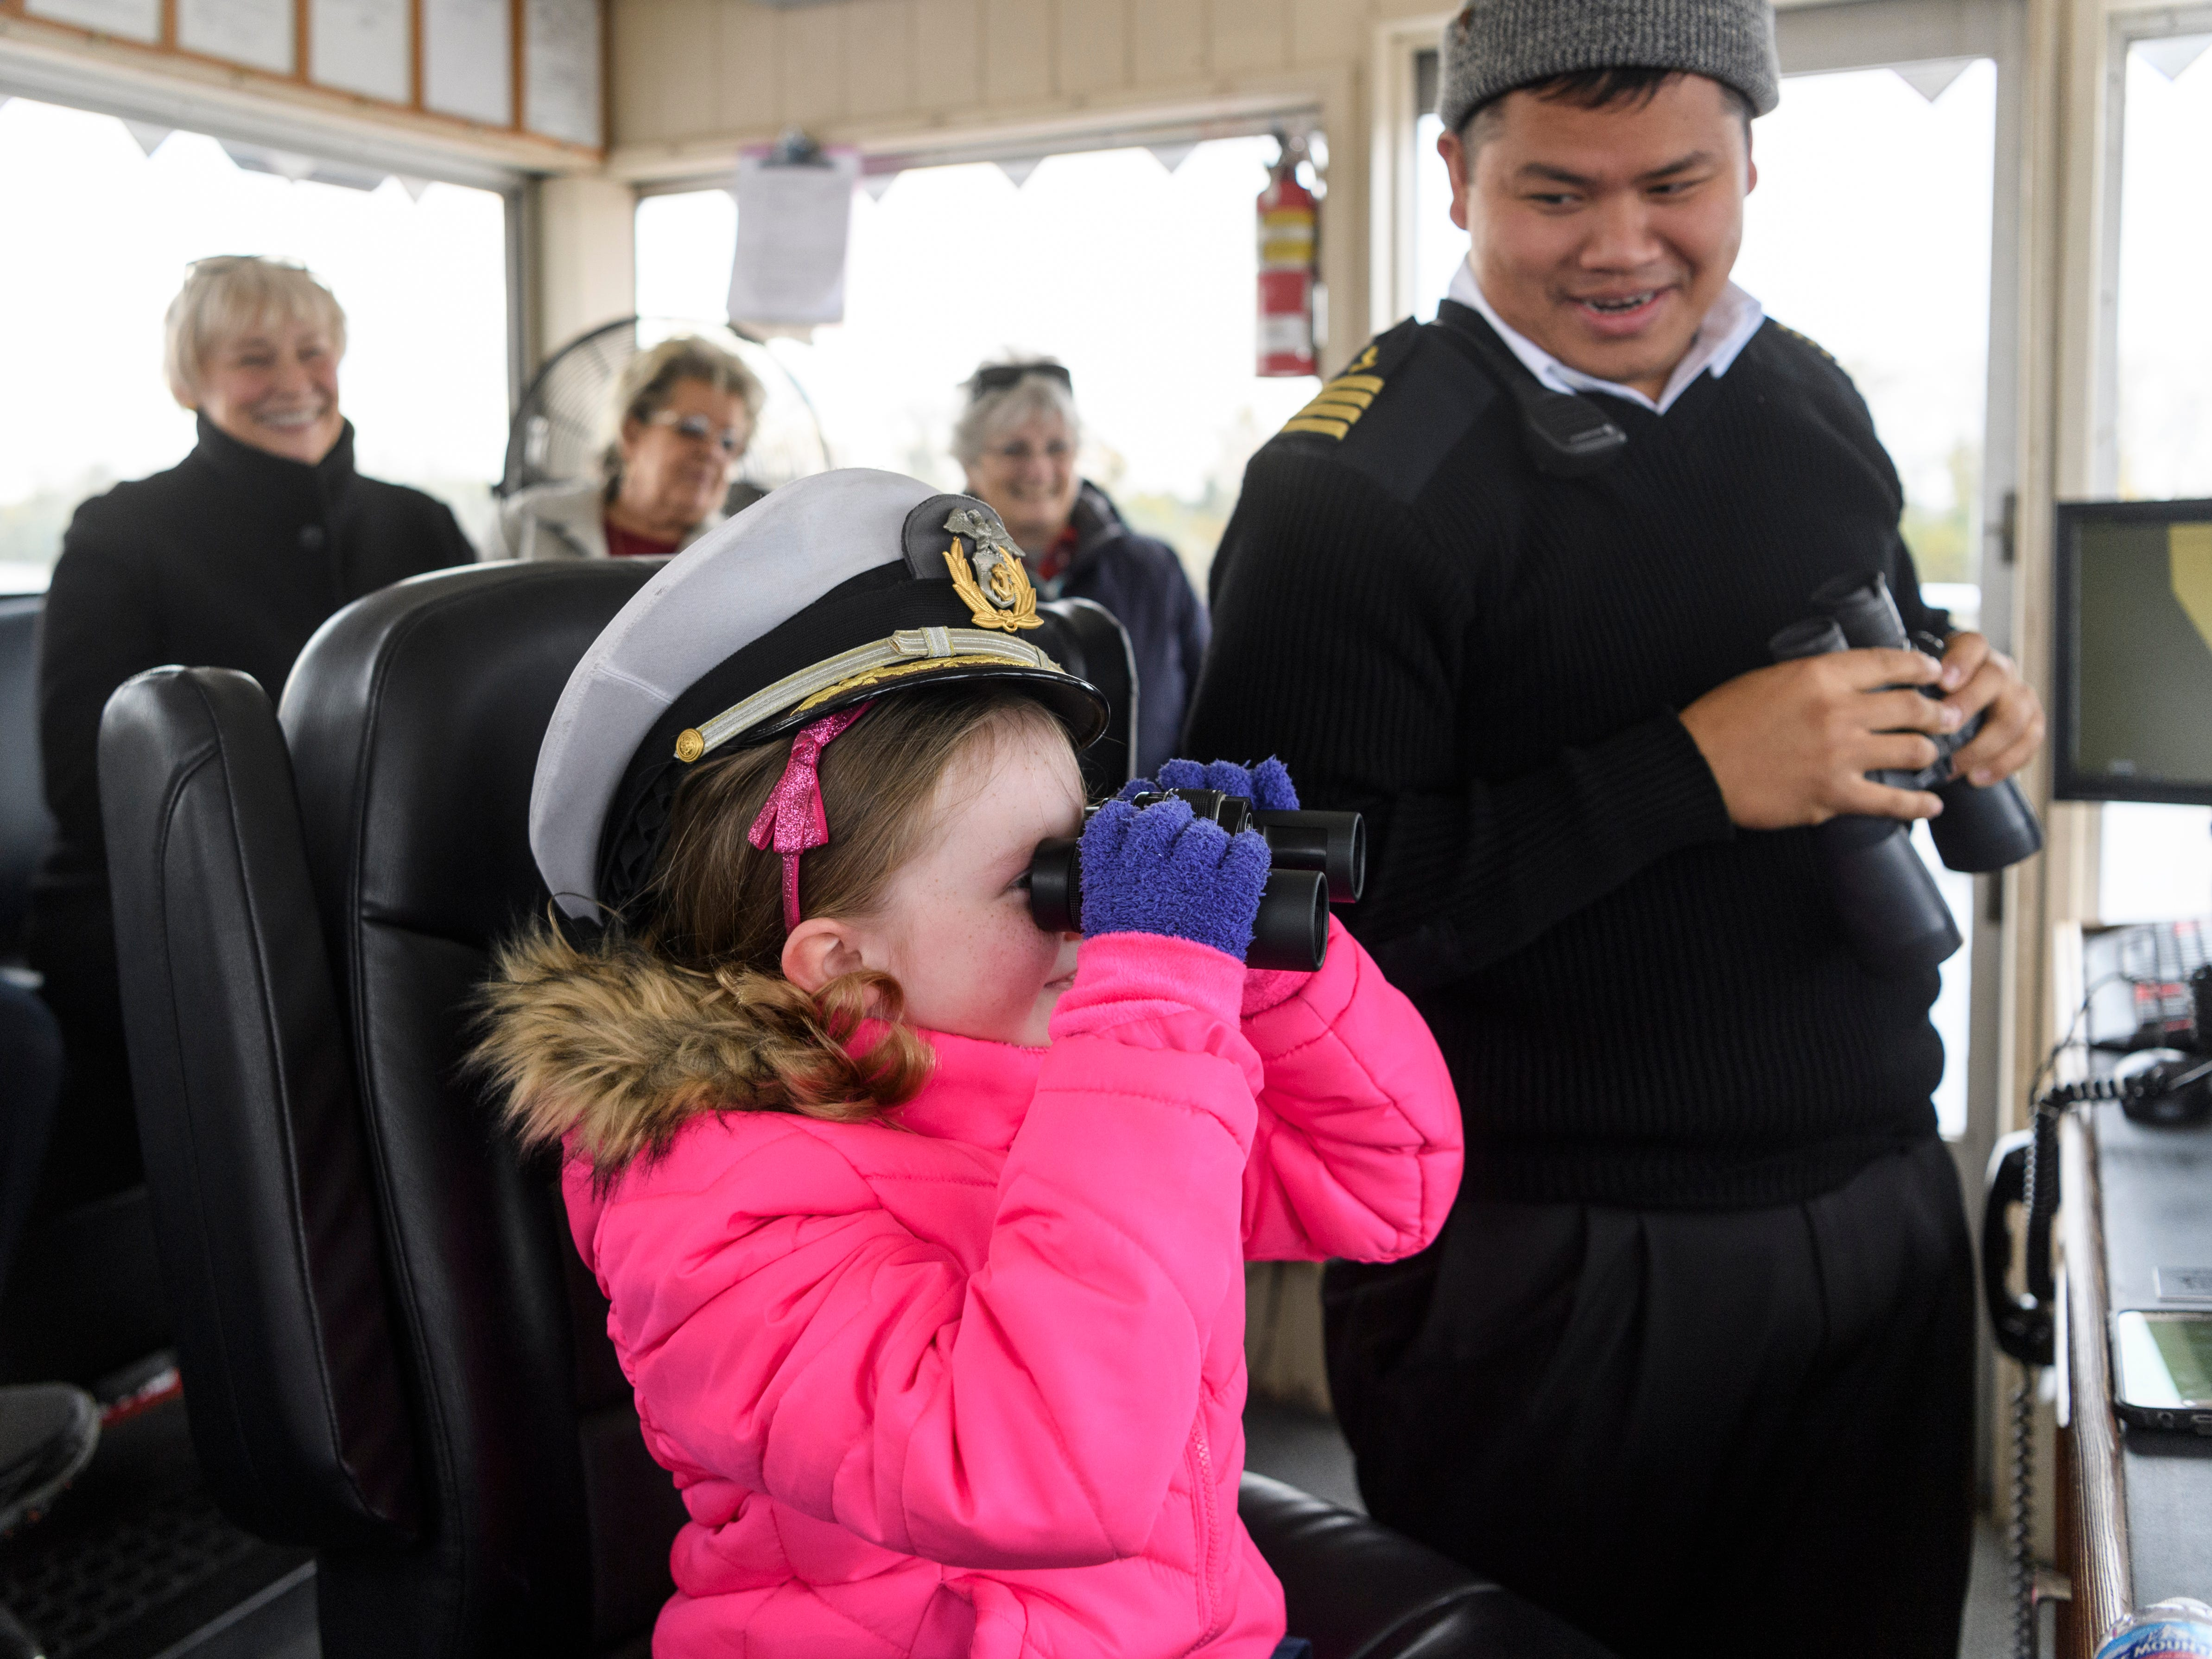 Daniela Meeks, 7, helps Captain Sam Sengsouvanh, right, steer the Belle of Cincinnati during a two-hour lunch cruise along the Ohio River near Henderson, Ky., Thursday afternoon, Nov. 8, 2018. Over 230 people climbed aboard the ship in downtown Henderson for food, drinks, dancing and sightseeing.